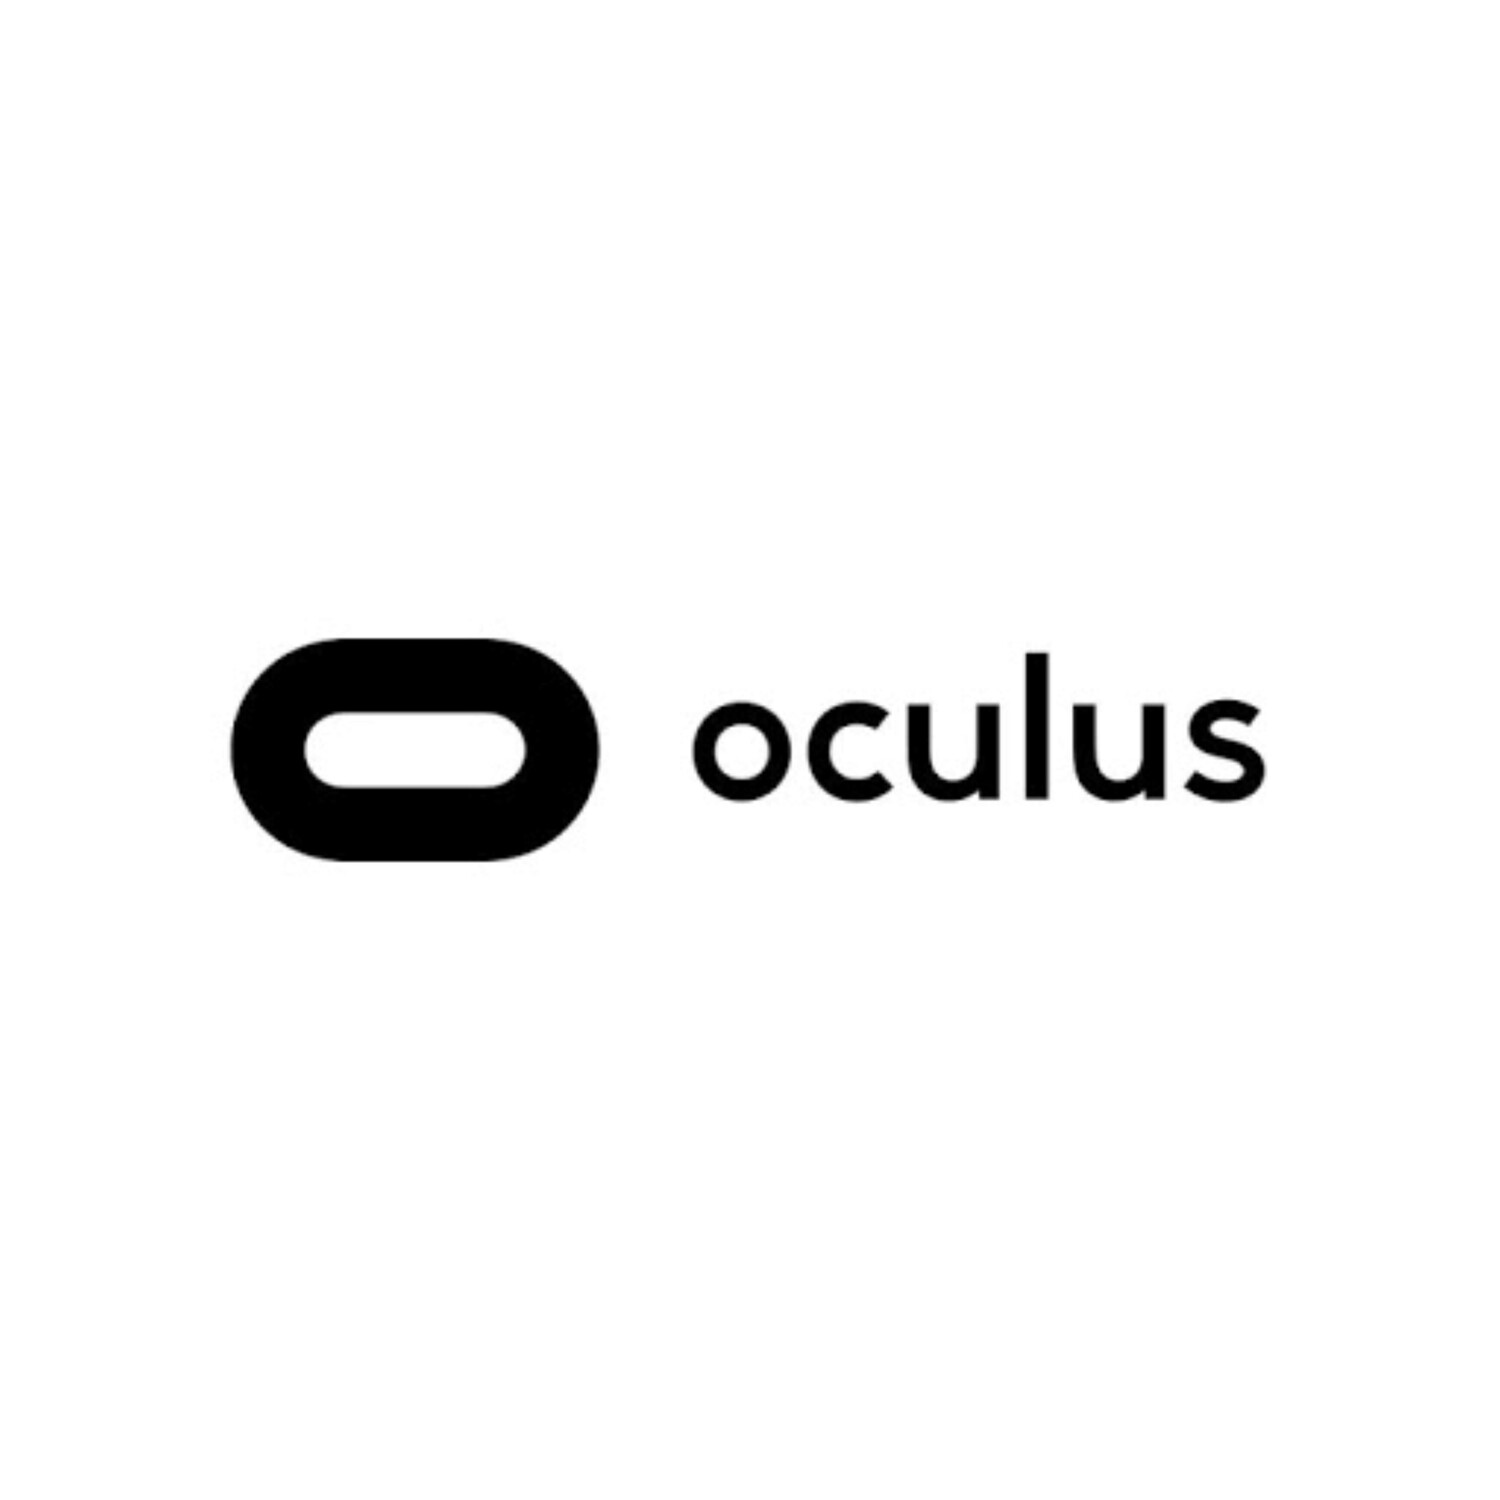 Jasa Oculus.com Pembelian Apps and Games di Oculus